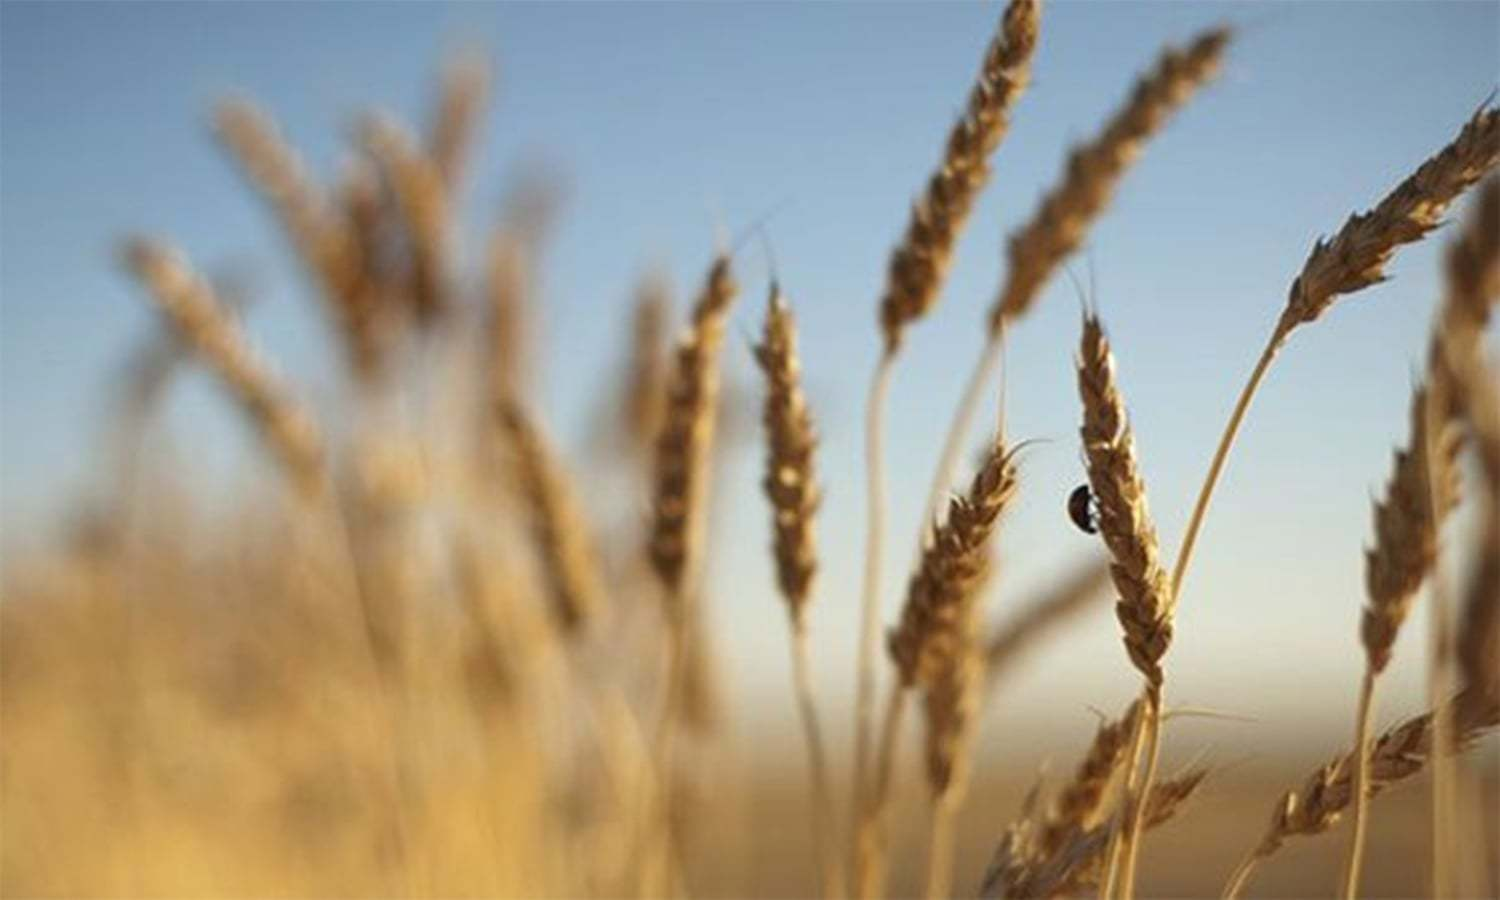 Rs1,600 minimum support price recommended for wheat